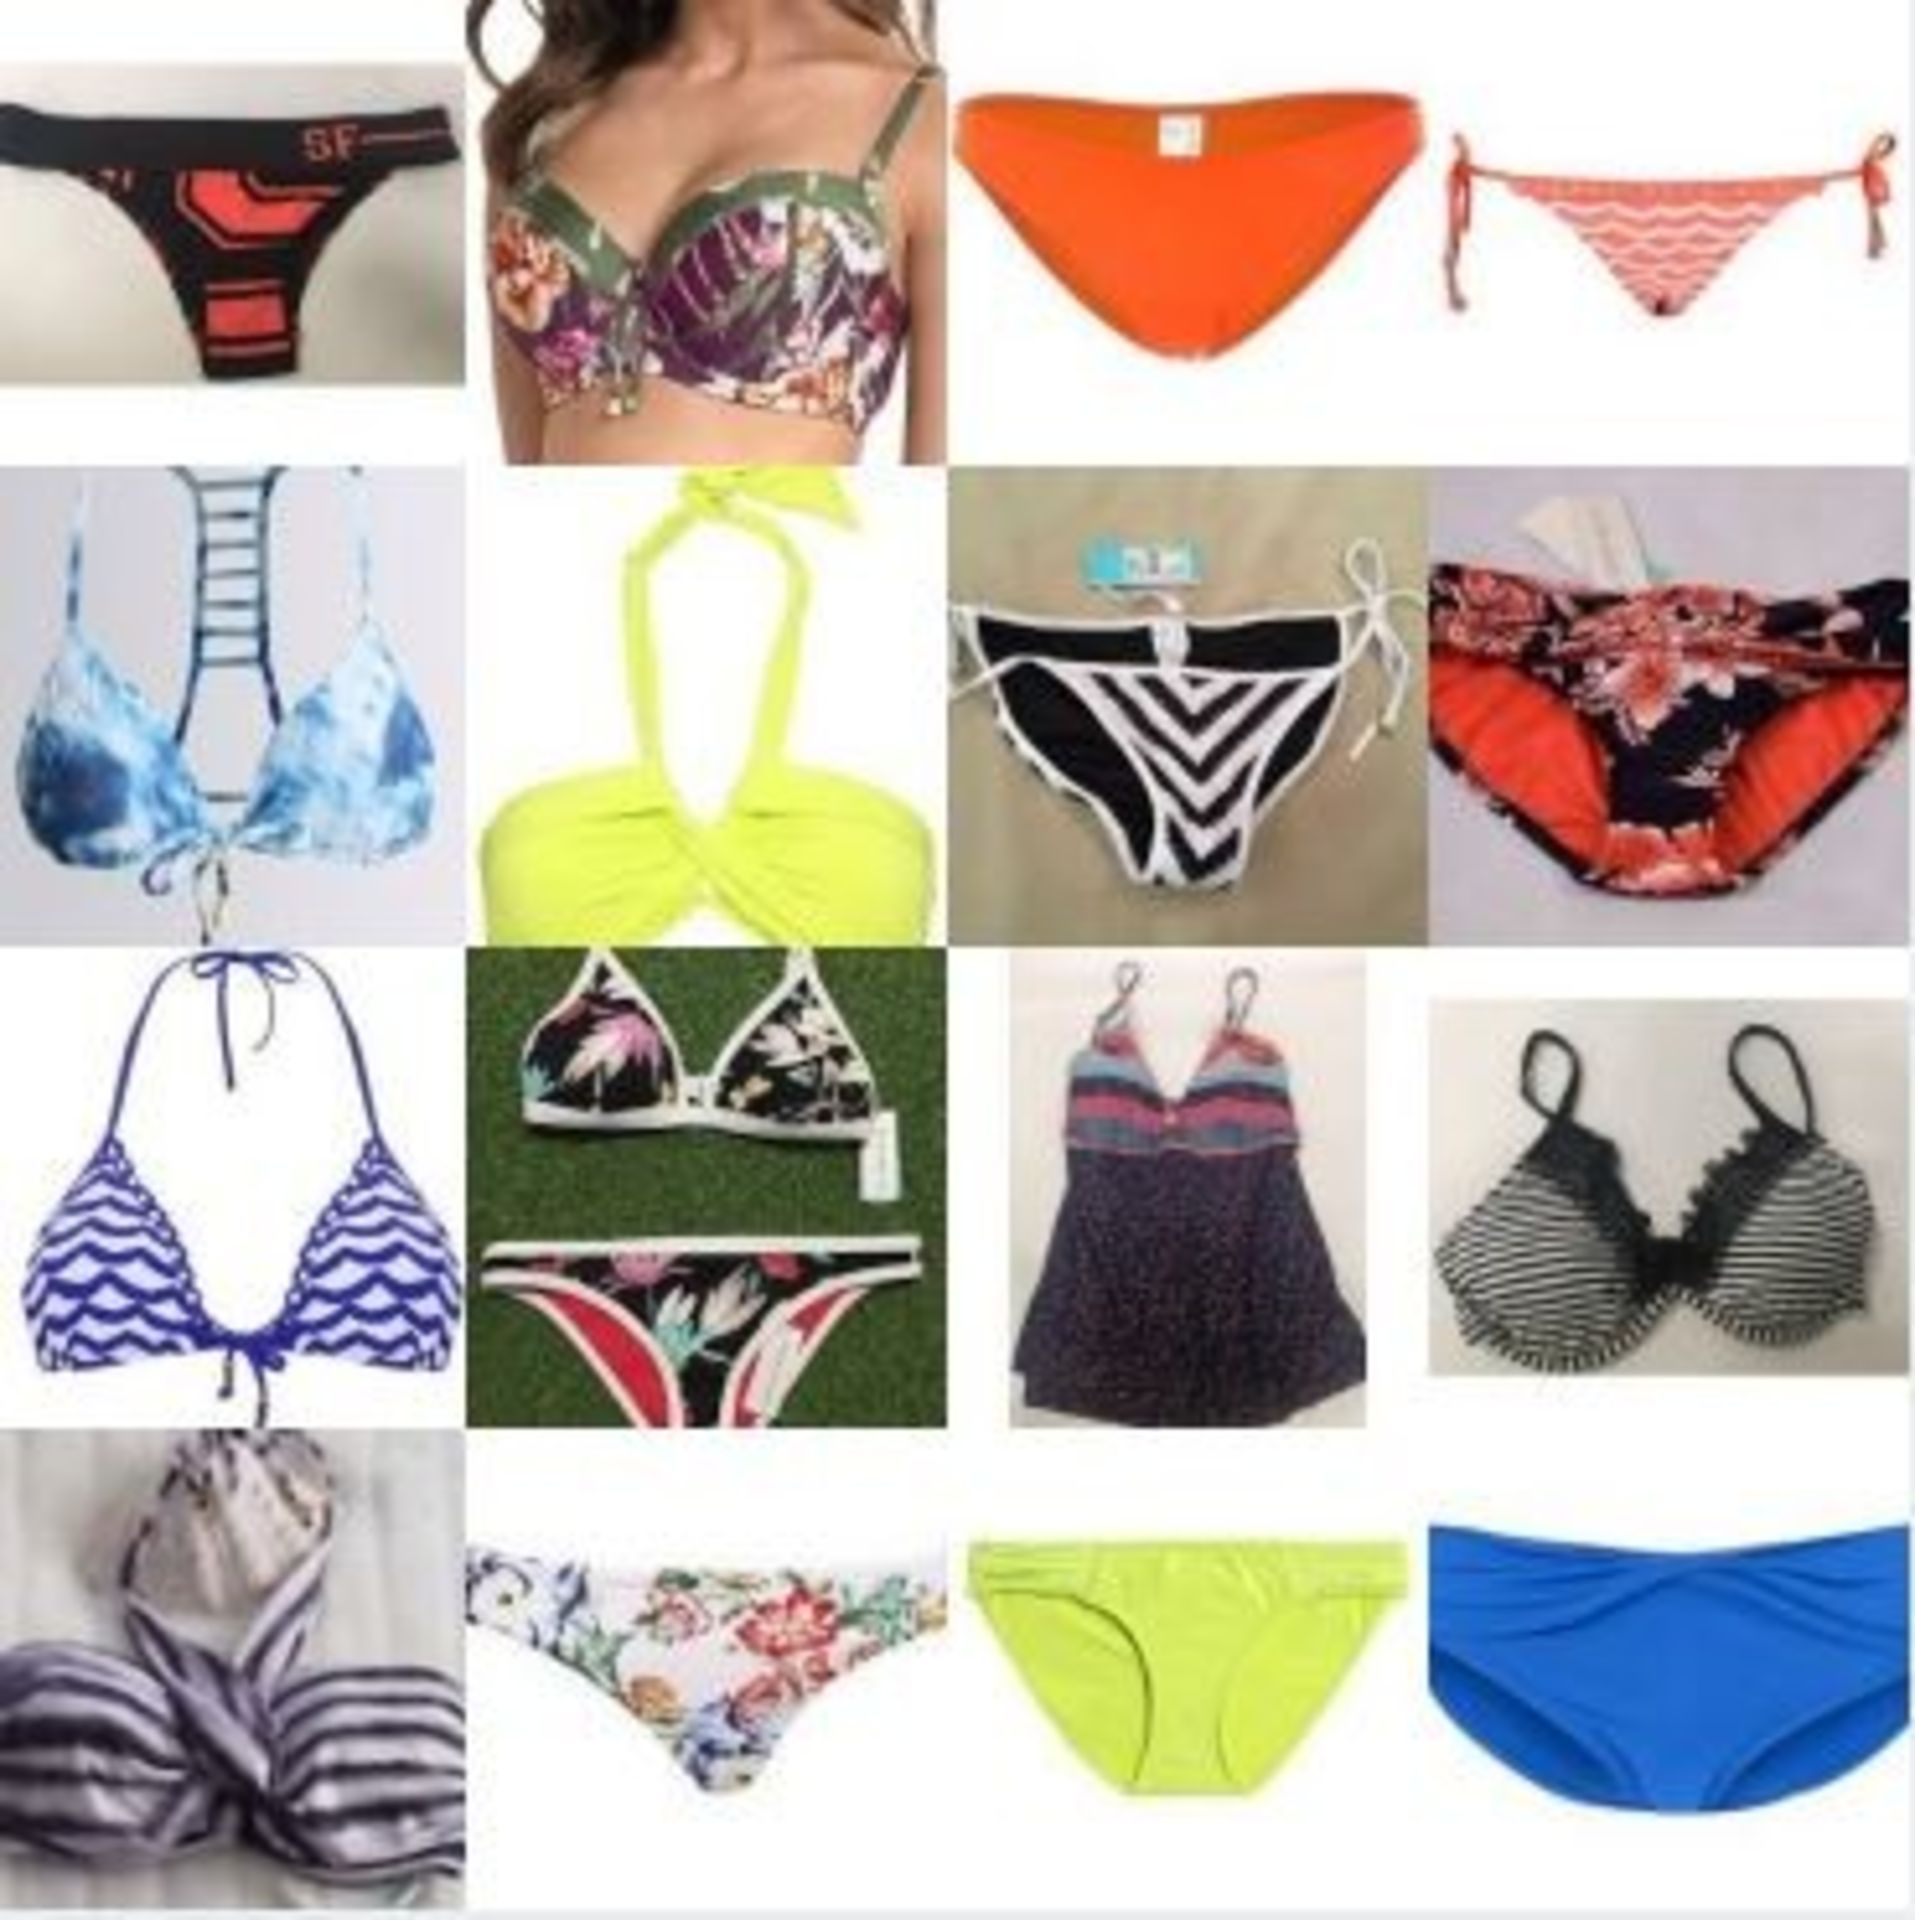 Lot 9 - Sourced From Big Brand Bikini Manufacturer SeaFolly: